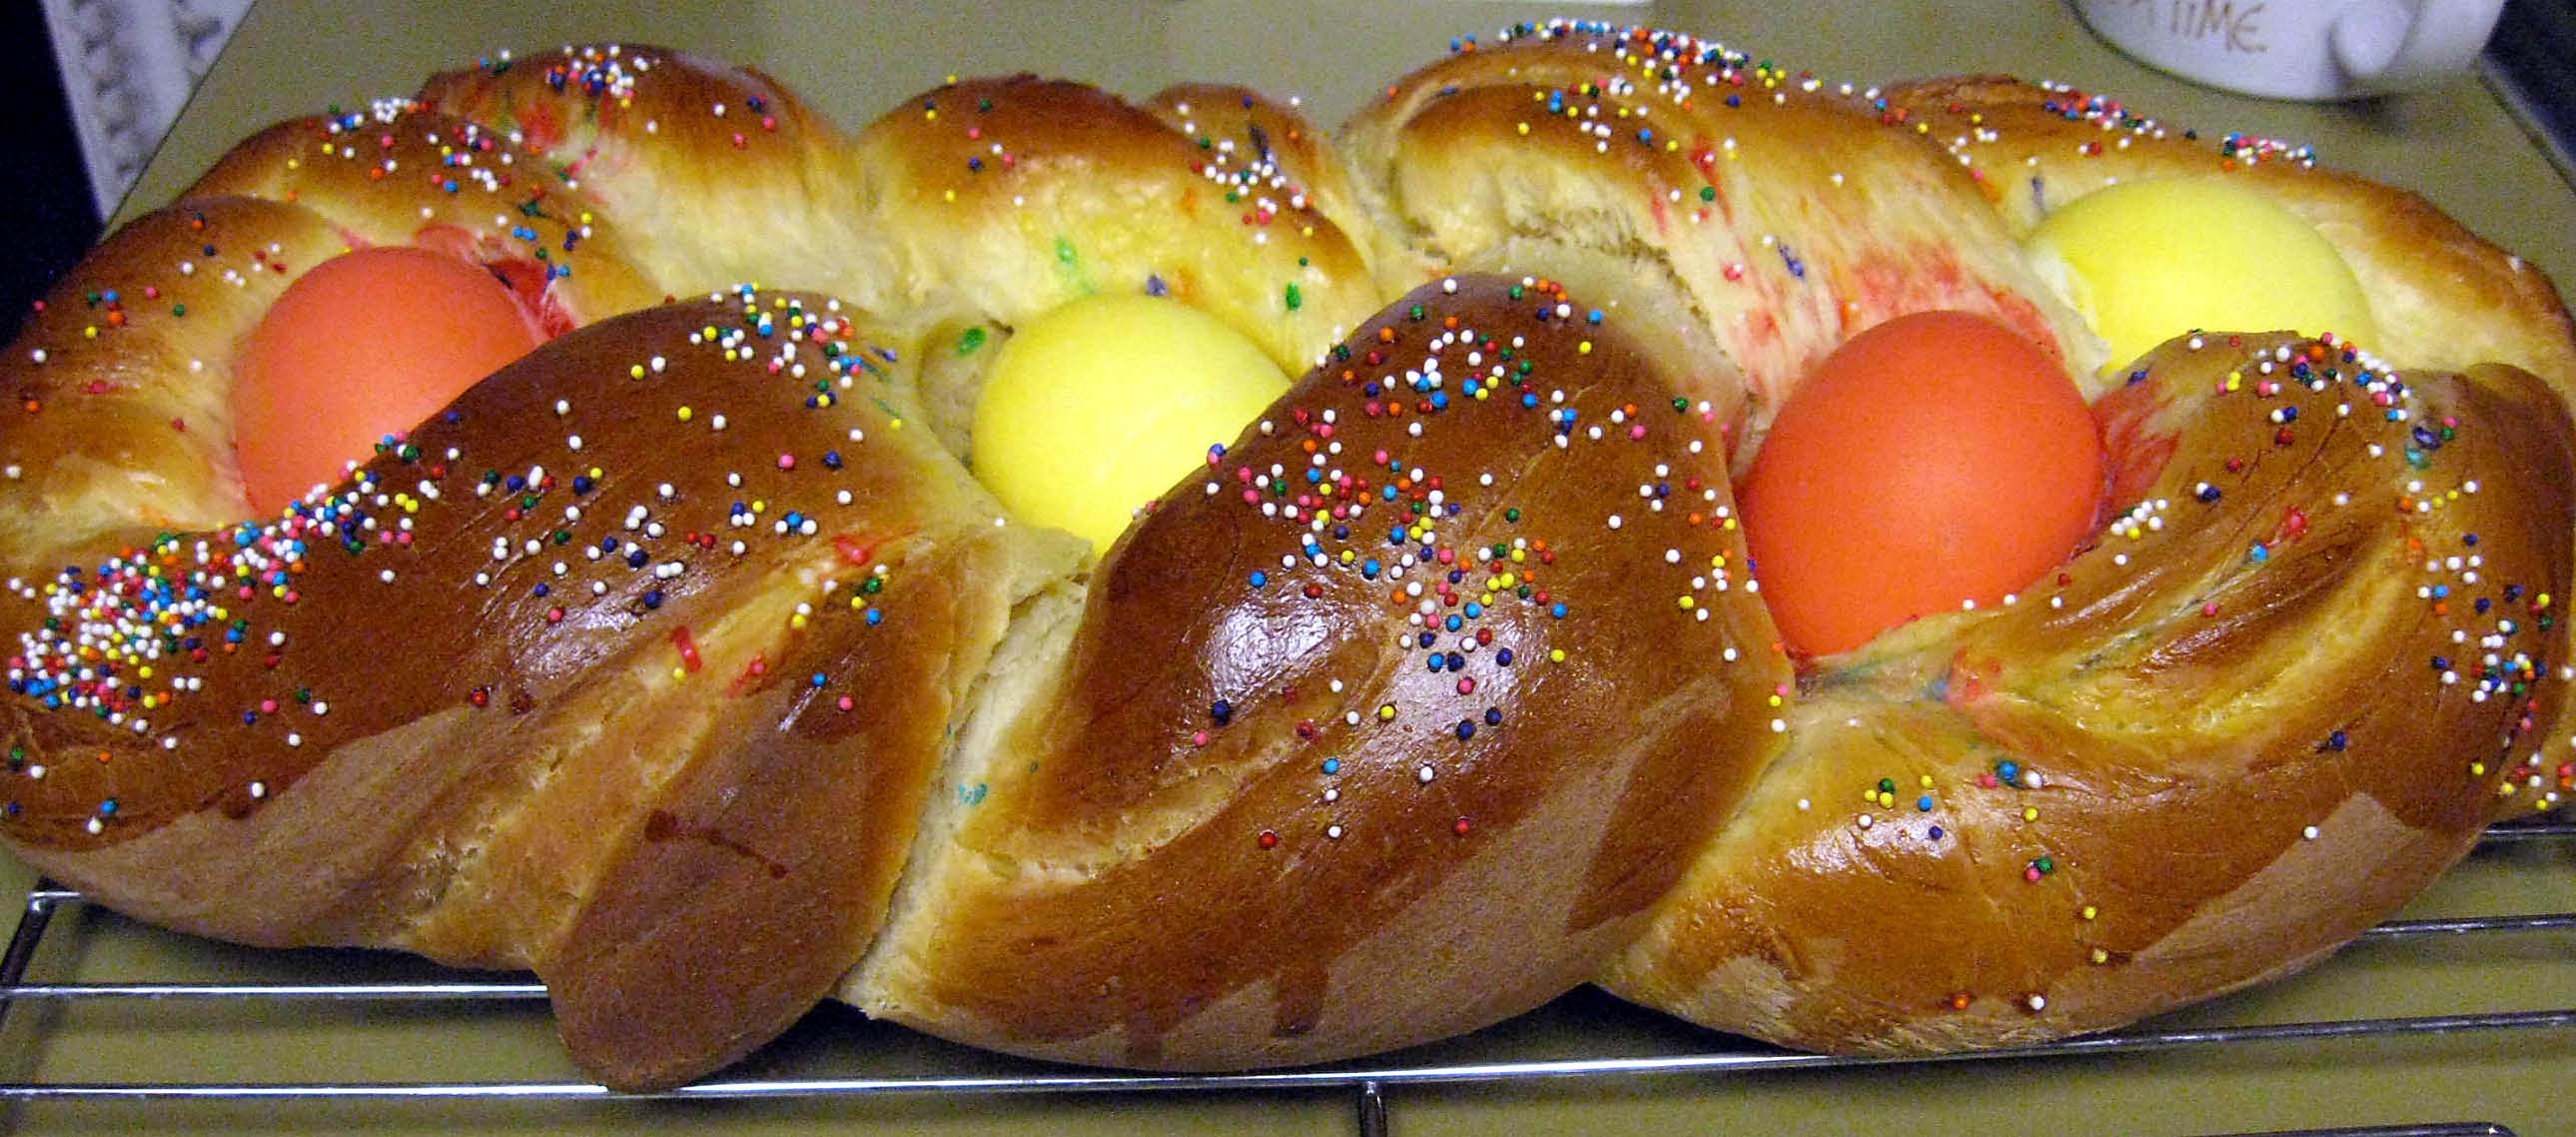 Italian Easter Bread, delicious with a cup of black tea